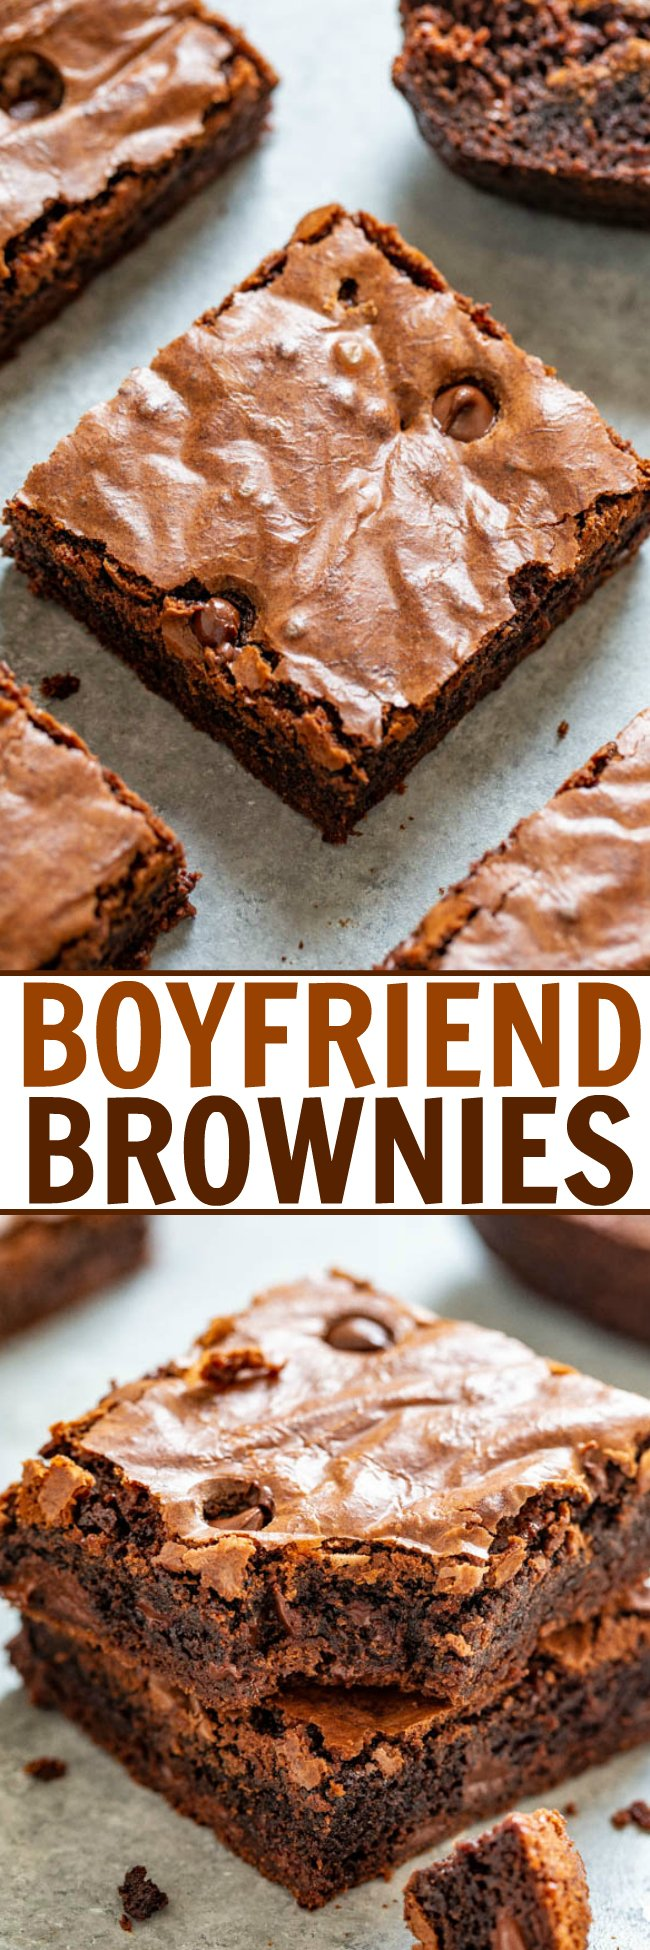 Boyfriend Brownies (Chocolate Chip Brownies) — Thick, rich, and a chocolate lover's dream!! Fudgy in the center with chewy edges and studded with chocolate chips! If you're craving chocolate, this EASY homemade brownie recipe is just what you need!!